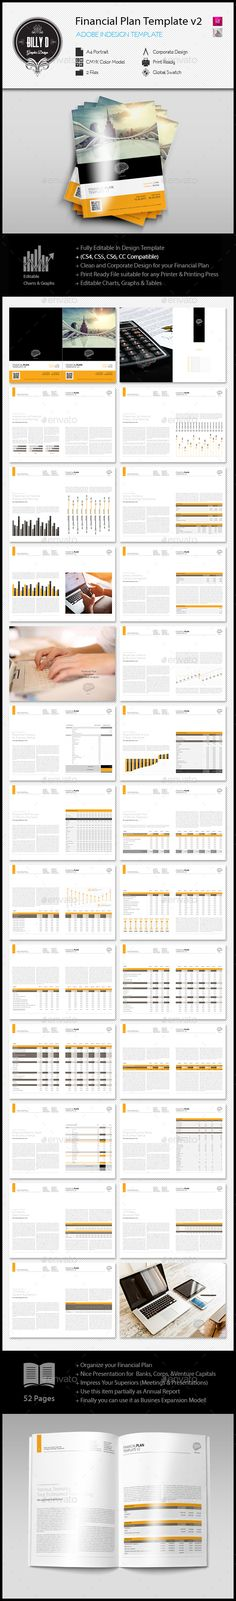 Excel Habbowildtk Personal Financial Financial Plan Templates Plan